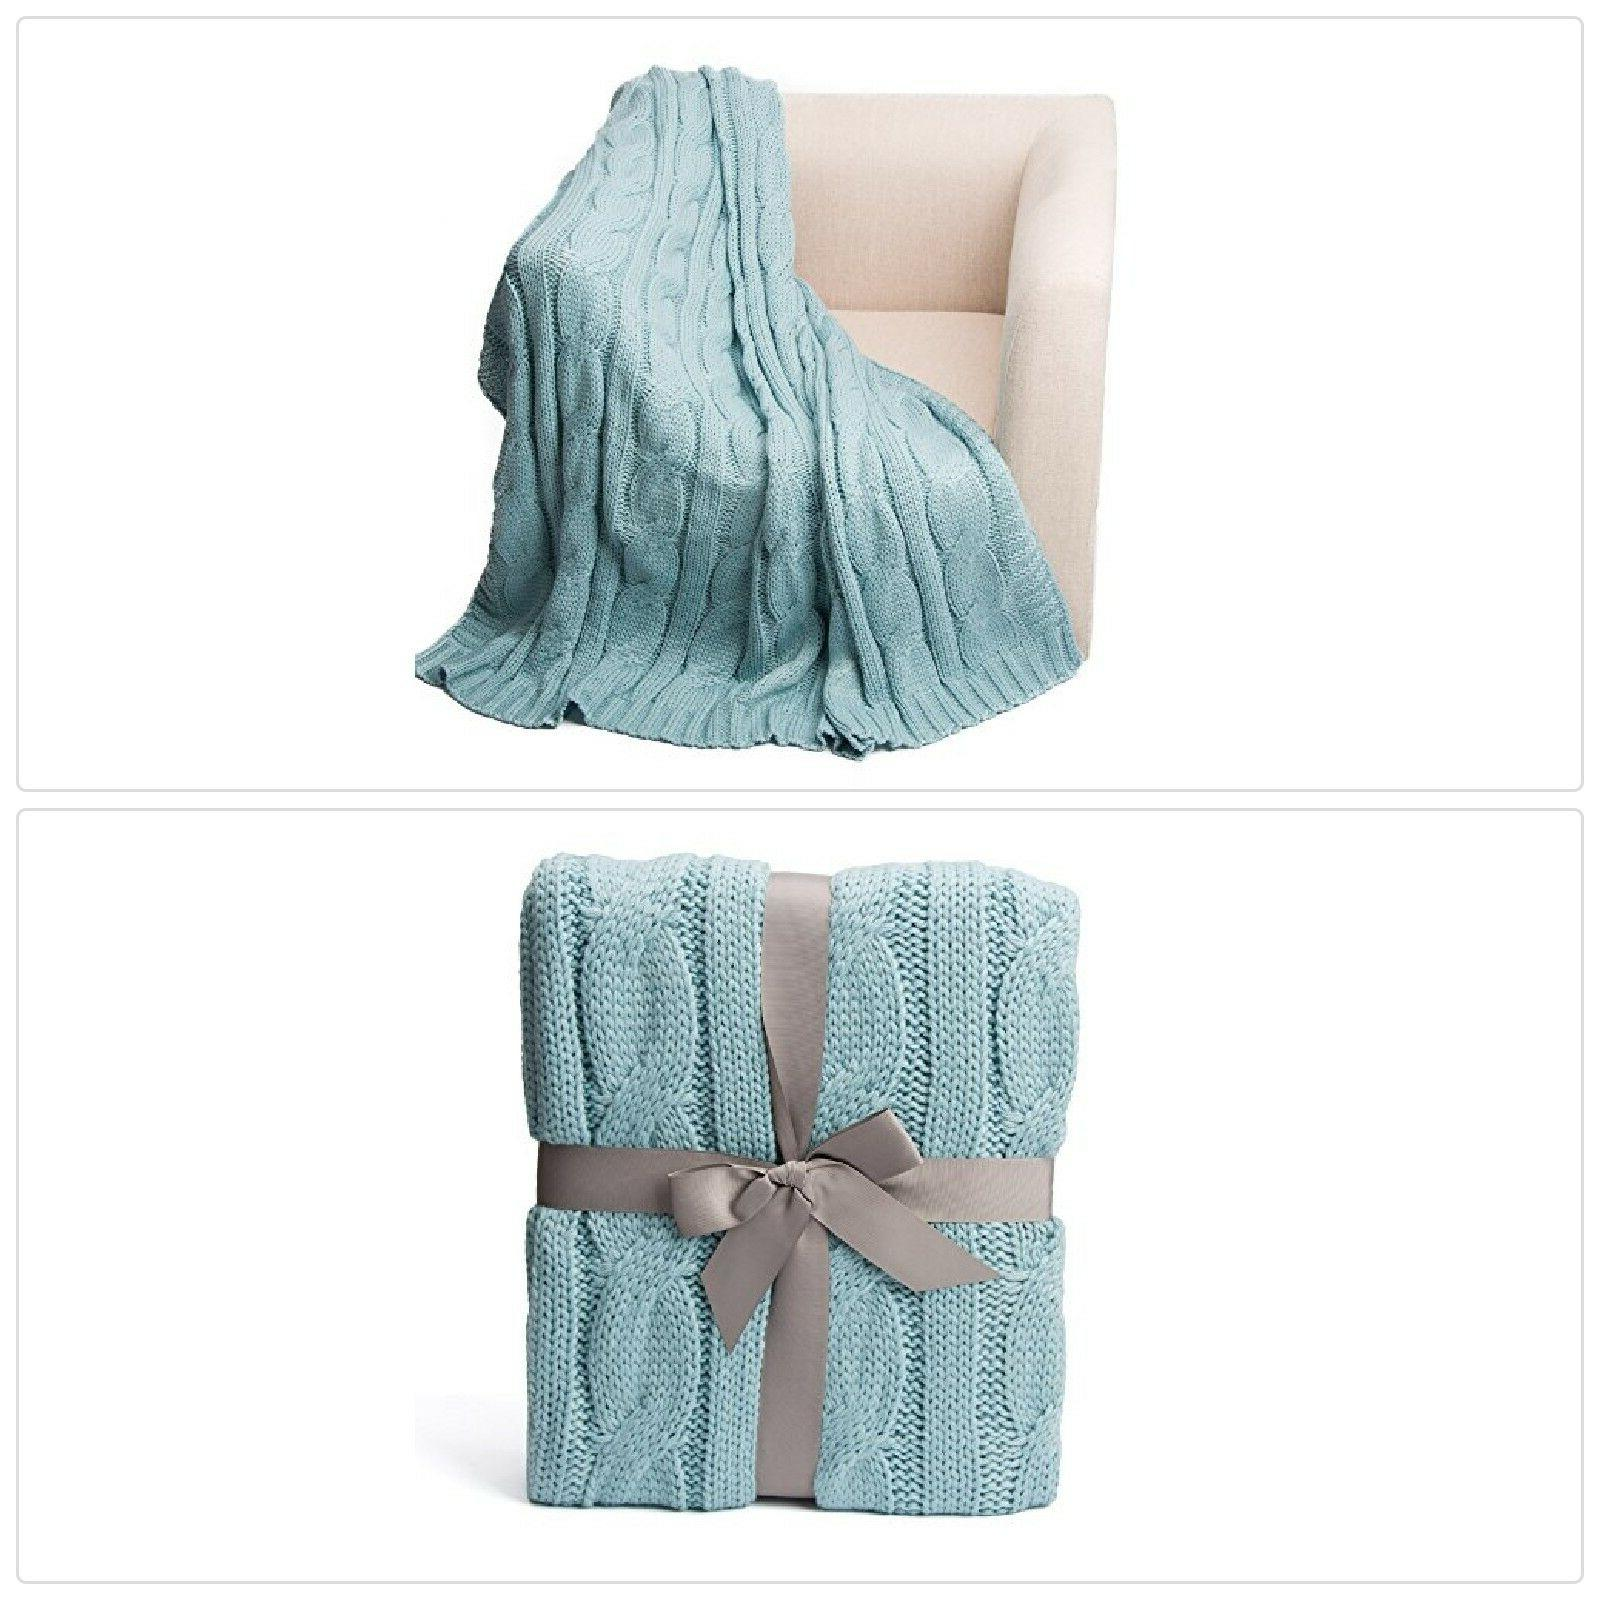 battilo Soft Knitted Dual Cable Throw Blanket, Pale Blue